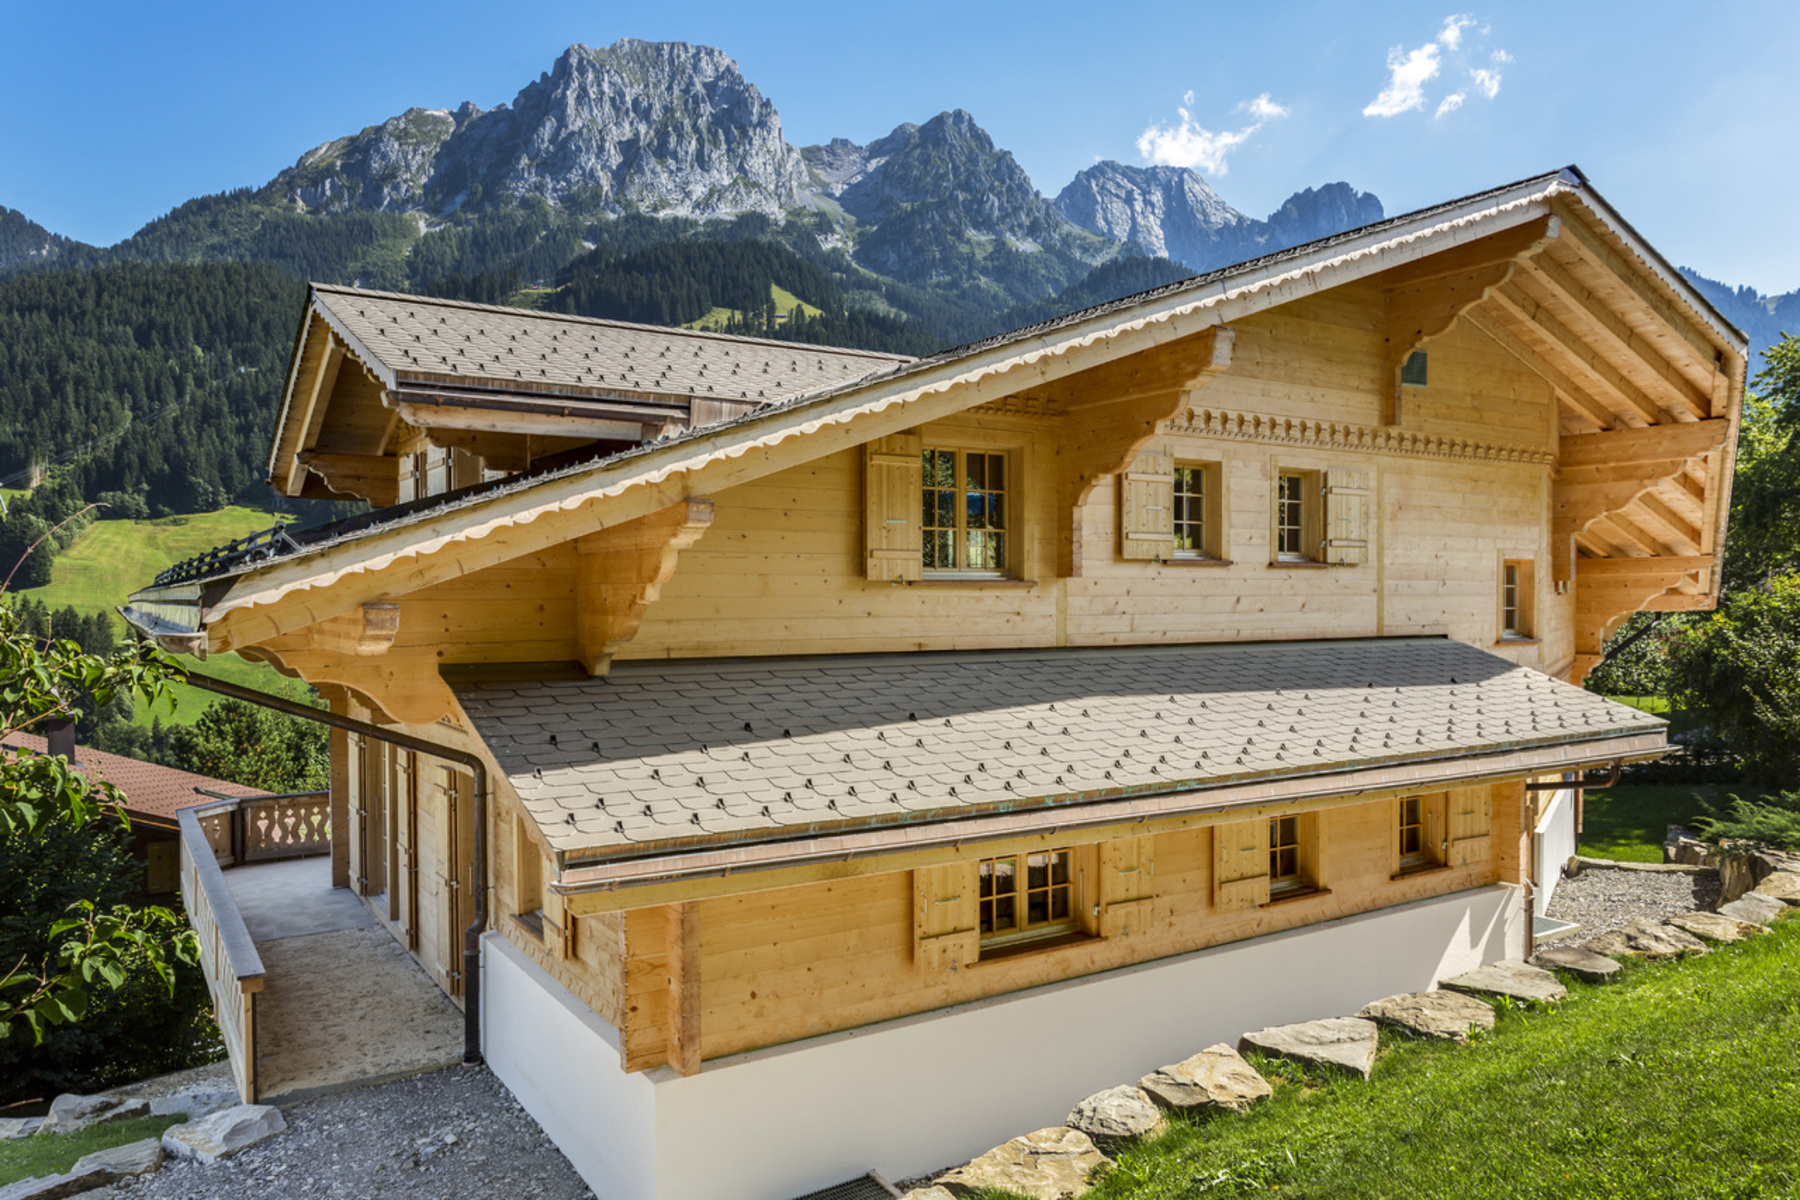 Single Family Home for Sale at Superb chalet in Rougemont Gstaad, Bern, 3780 Switzerland